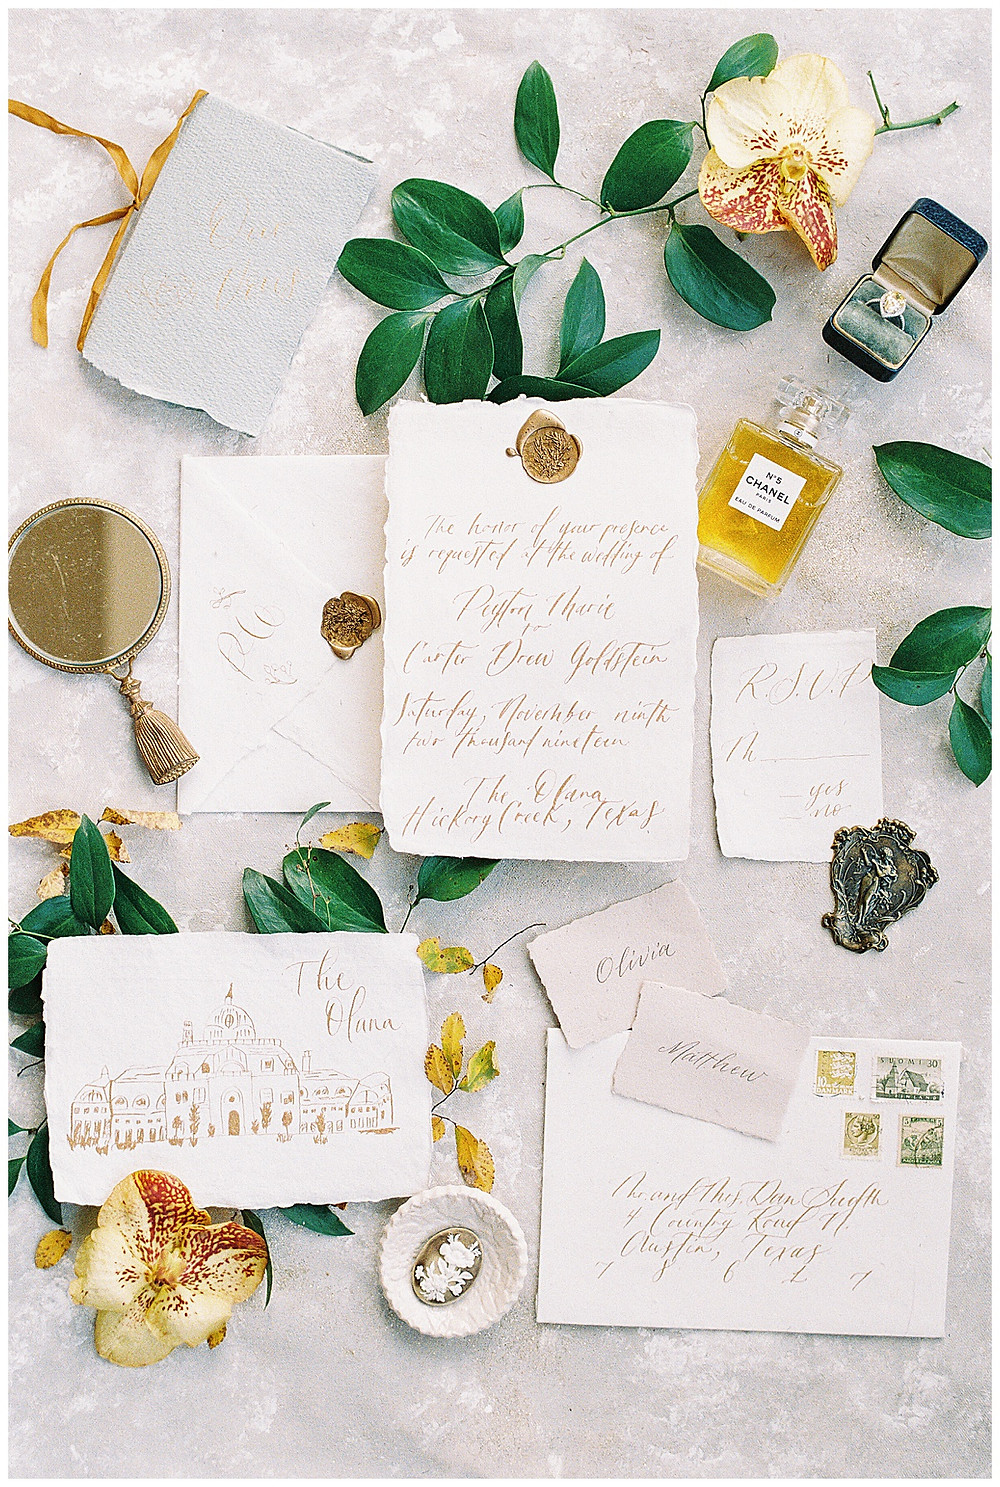 dallas wedding photography, The olana hickory creek texas, yellow green, white wedding, summer/spring wedding. film photography, deckled edge wedding invitation on handmade paper, with gold calligraphy, chanel perfume, grey vow book and gold ribbon , wax seal